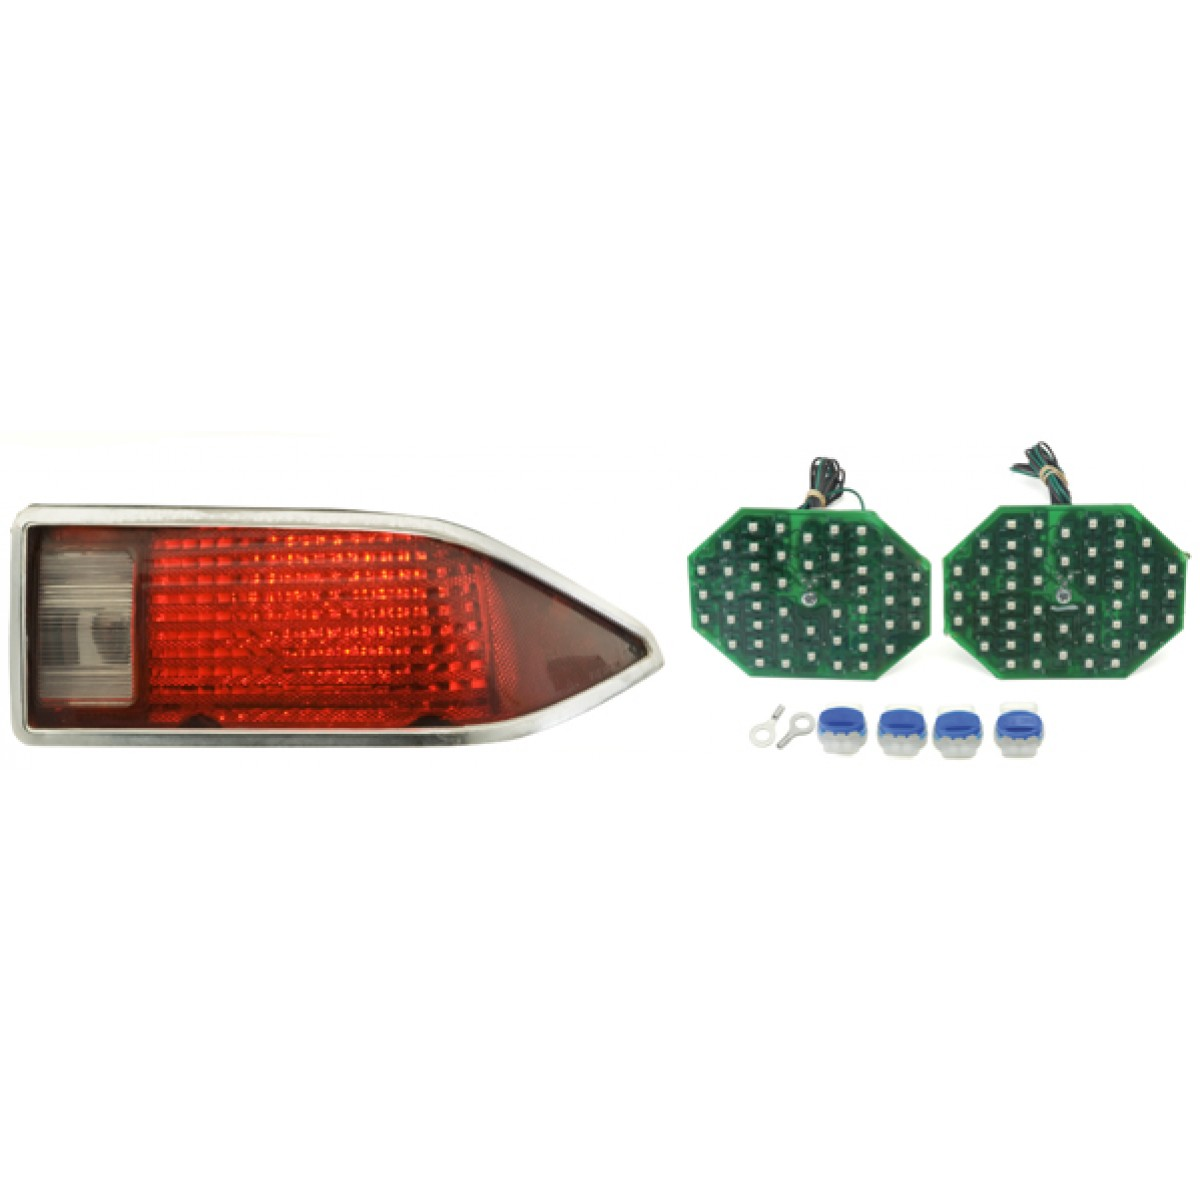 1974 - 1977 Camaro Led Tail Lights